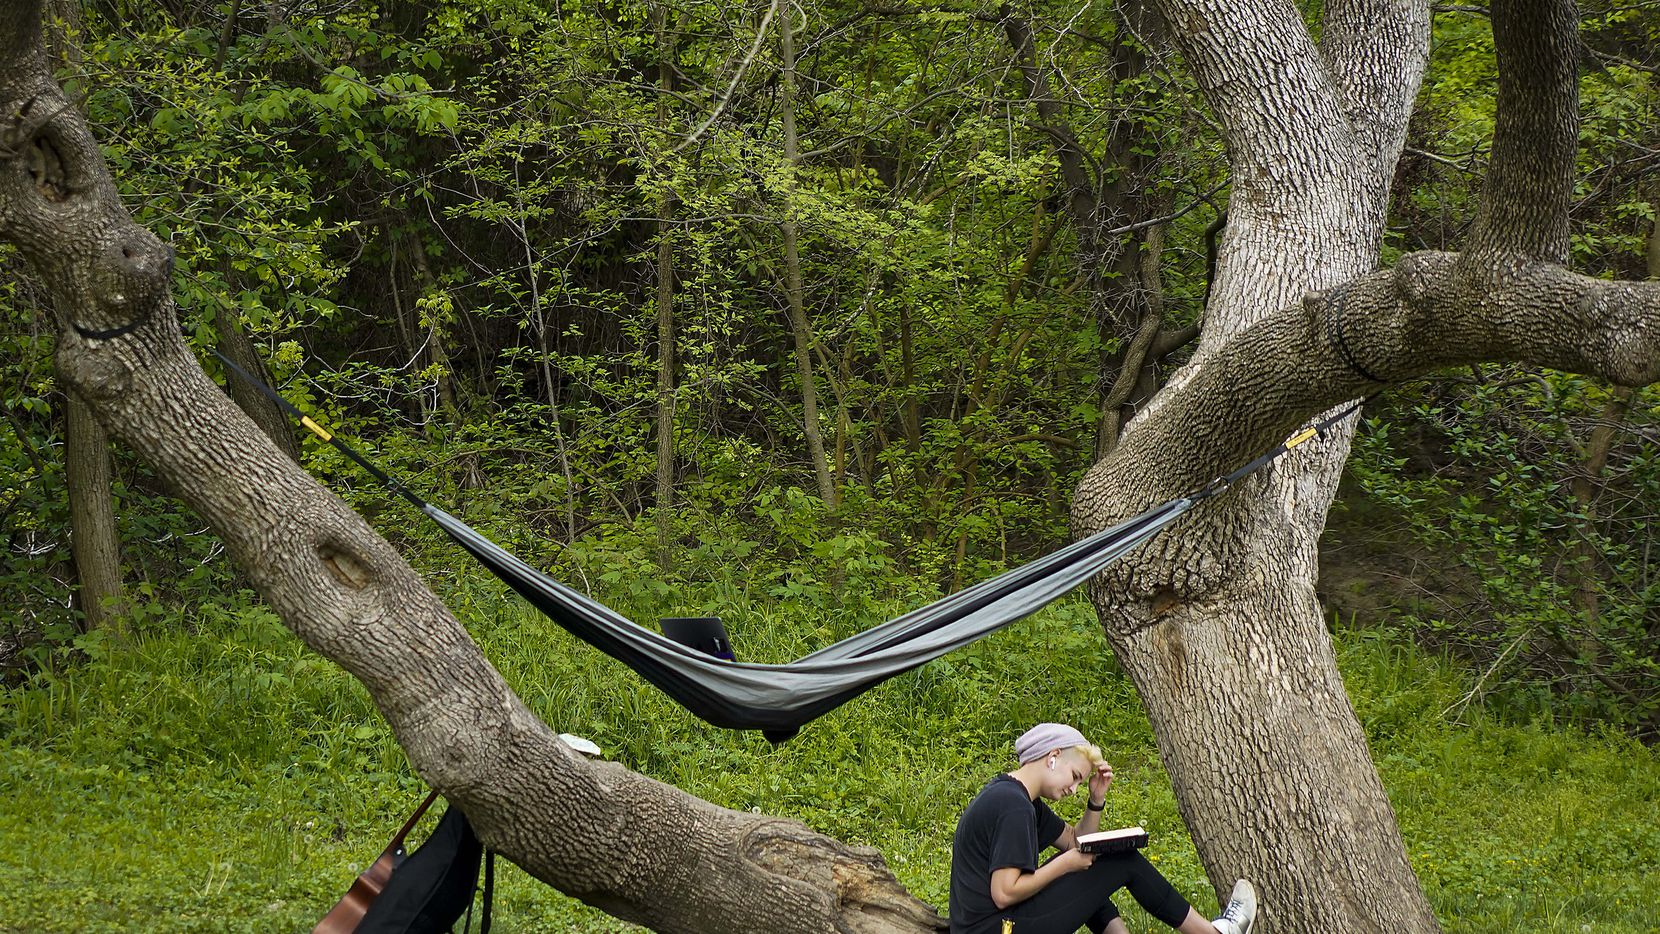 With a book, a hammock, a musical instrument, and a beverage, a woman enjoys time outdoors in Prairie Creek Park on Sunday, March 29, 2020, in Richardson, Texas. The city is considering improvements to parks as part of a potential bond package.